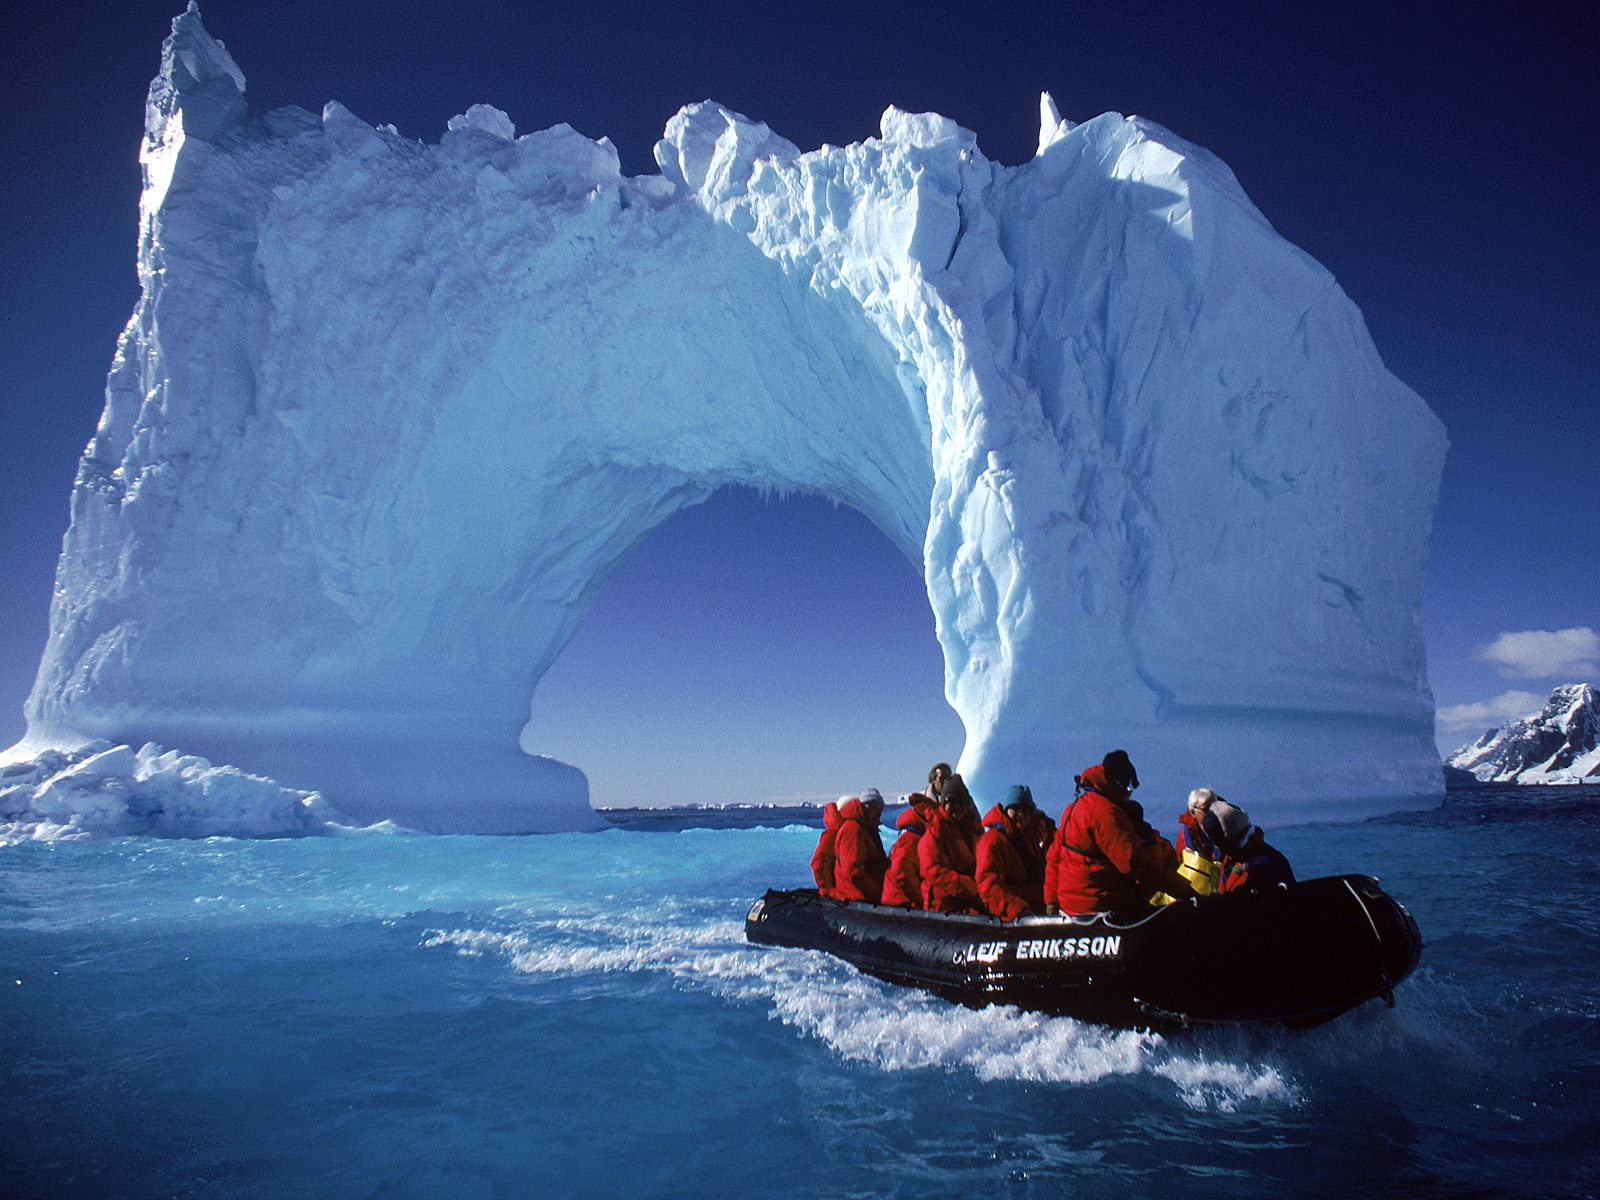 90% of the world's drinkable water is in Antarctica